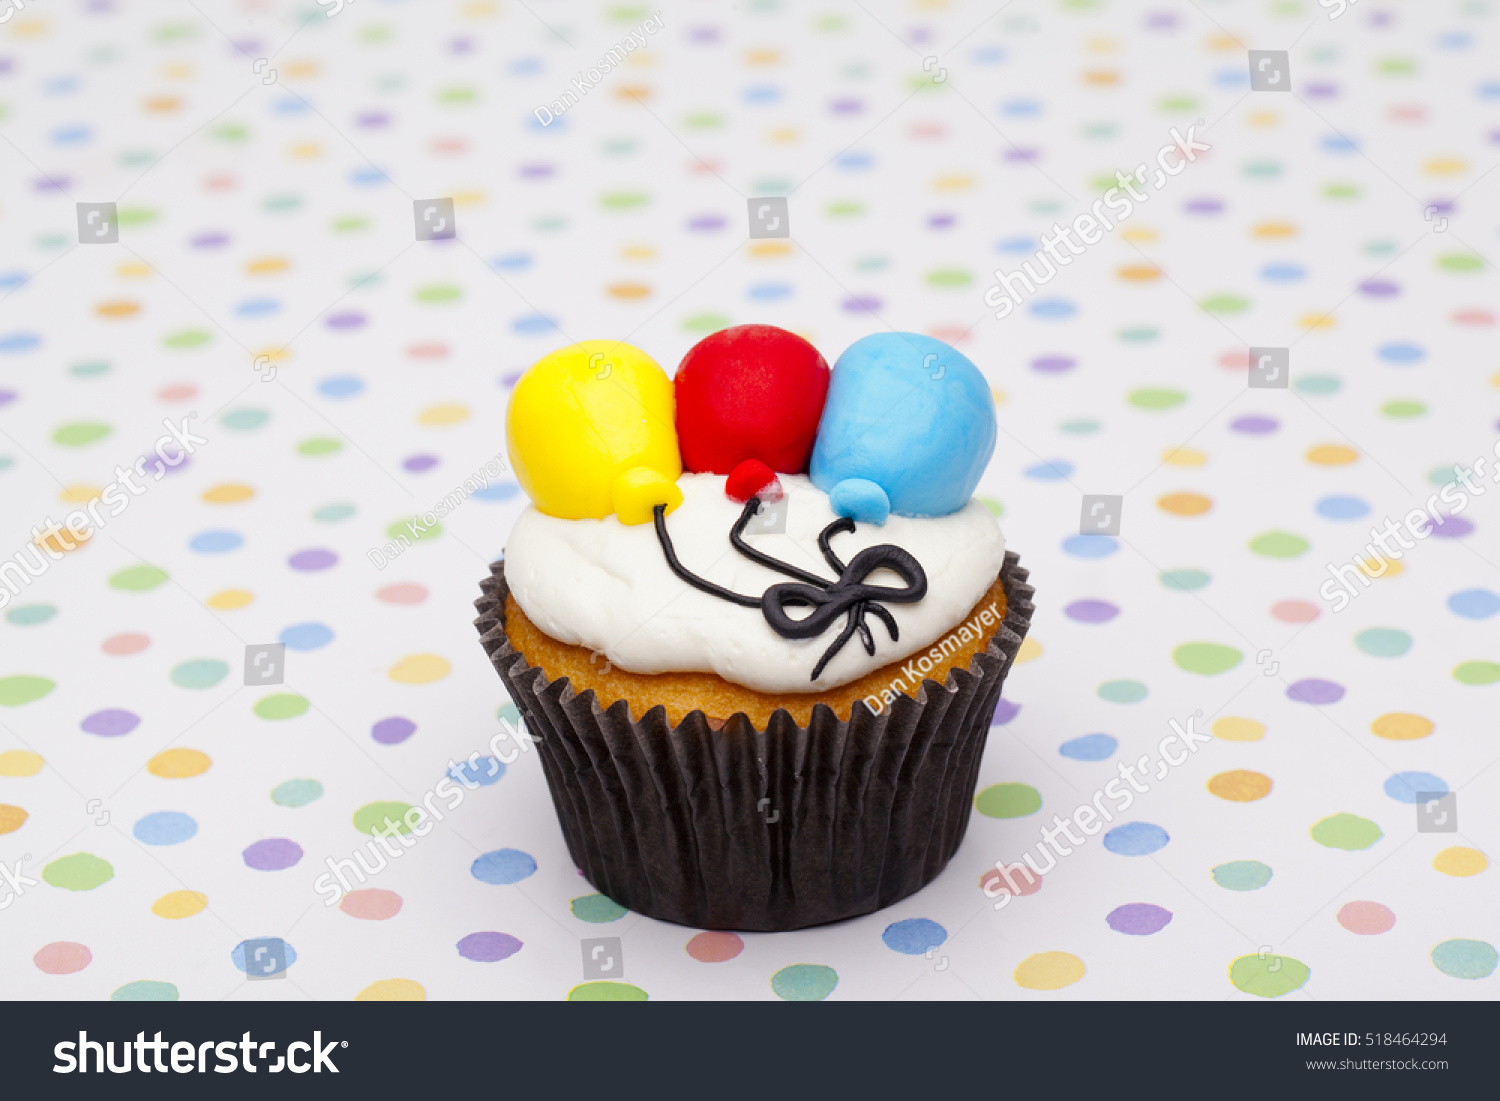 Decorated Birthday Cupcake With Cute Balloon Shaped